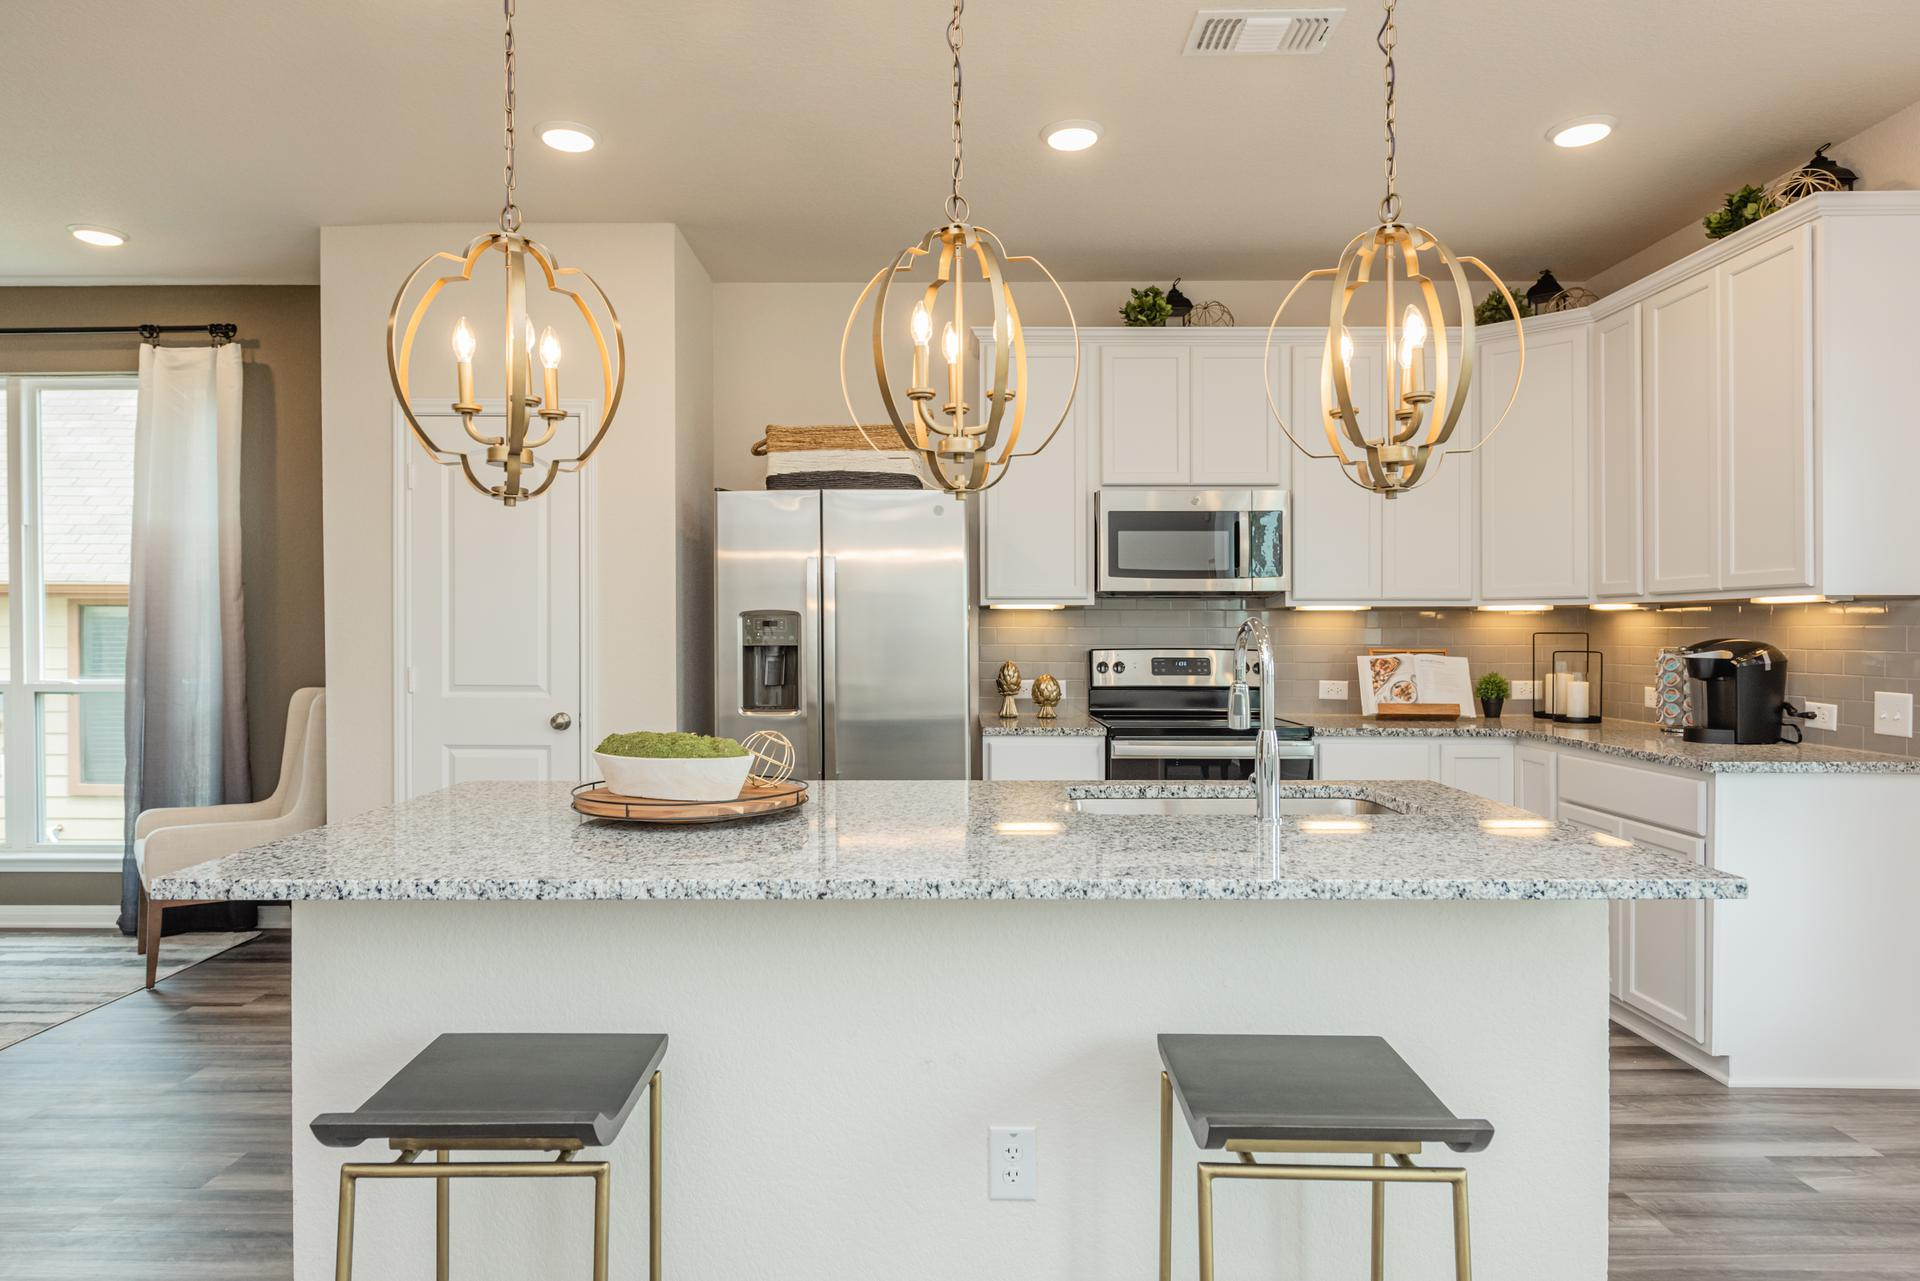 Yowell Ranch New Homes in Killeen, TX